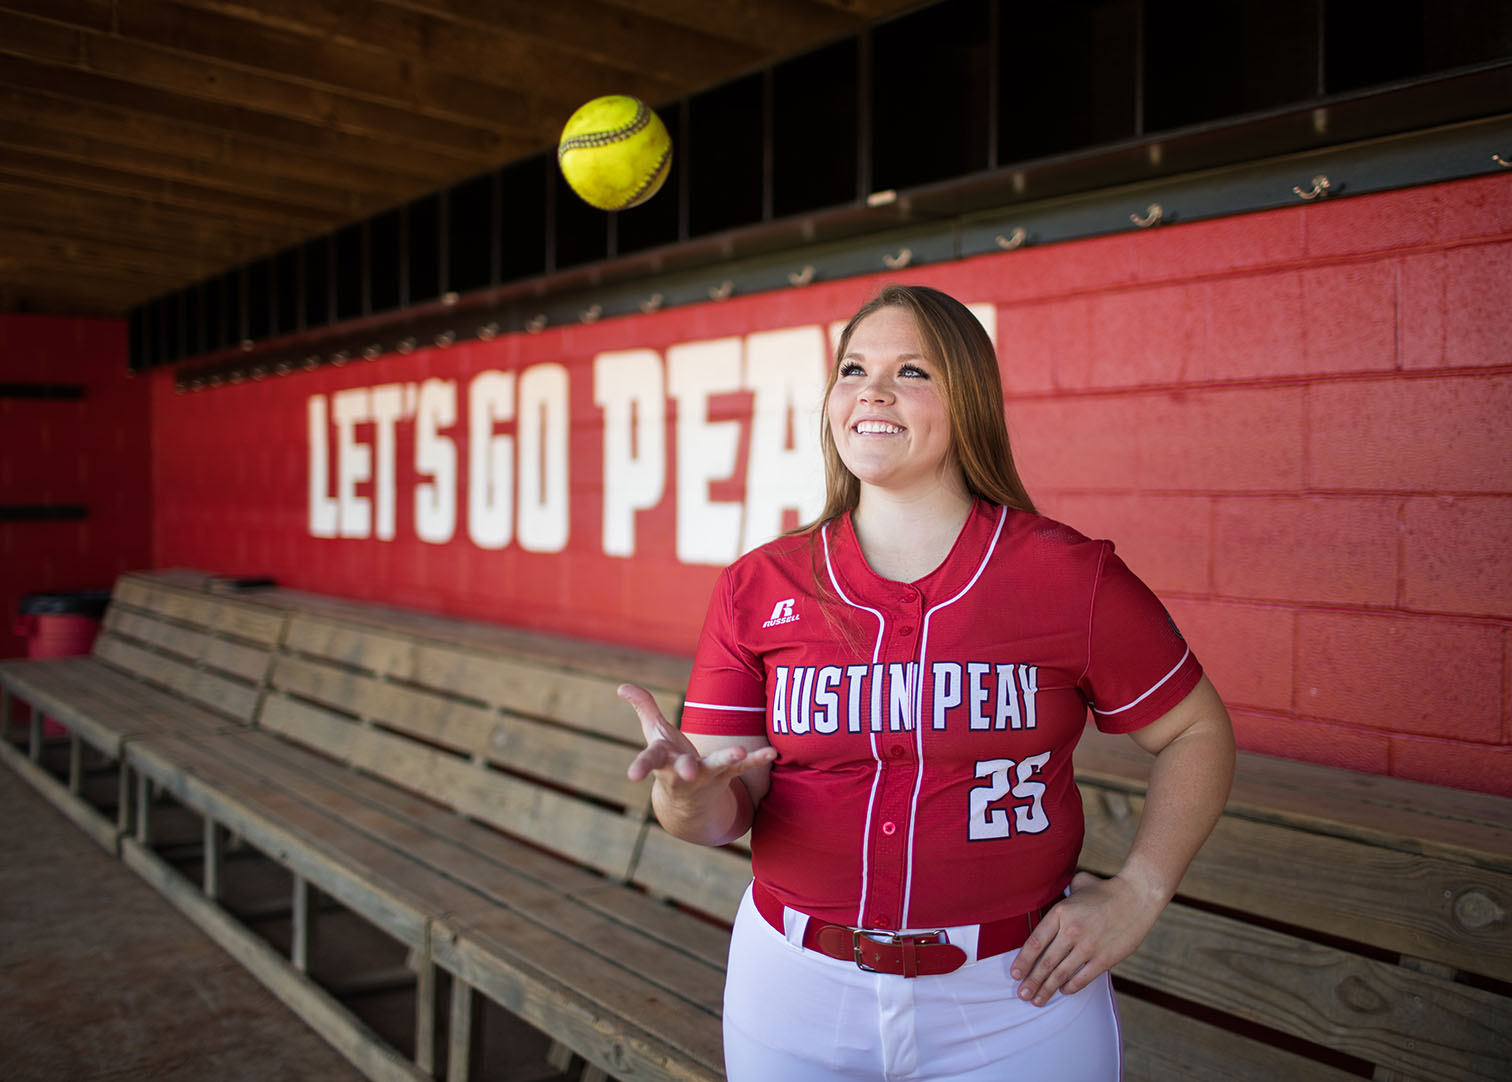 Alexis Hill poses on softball field